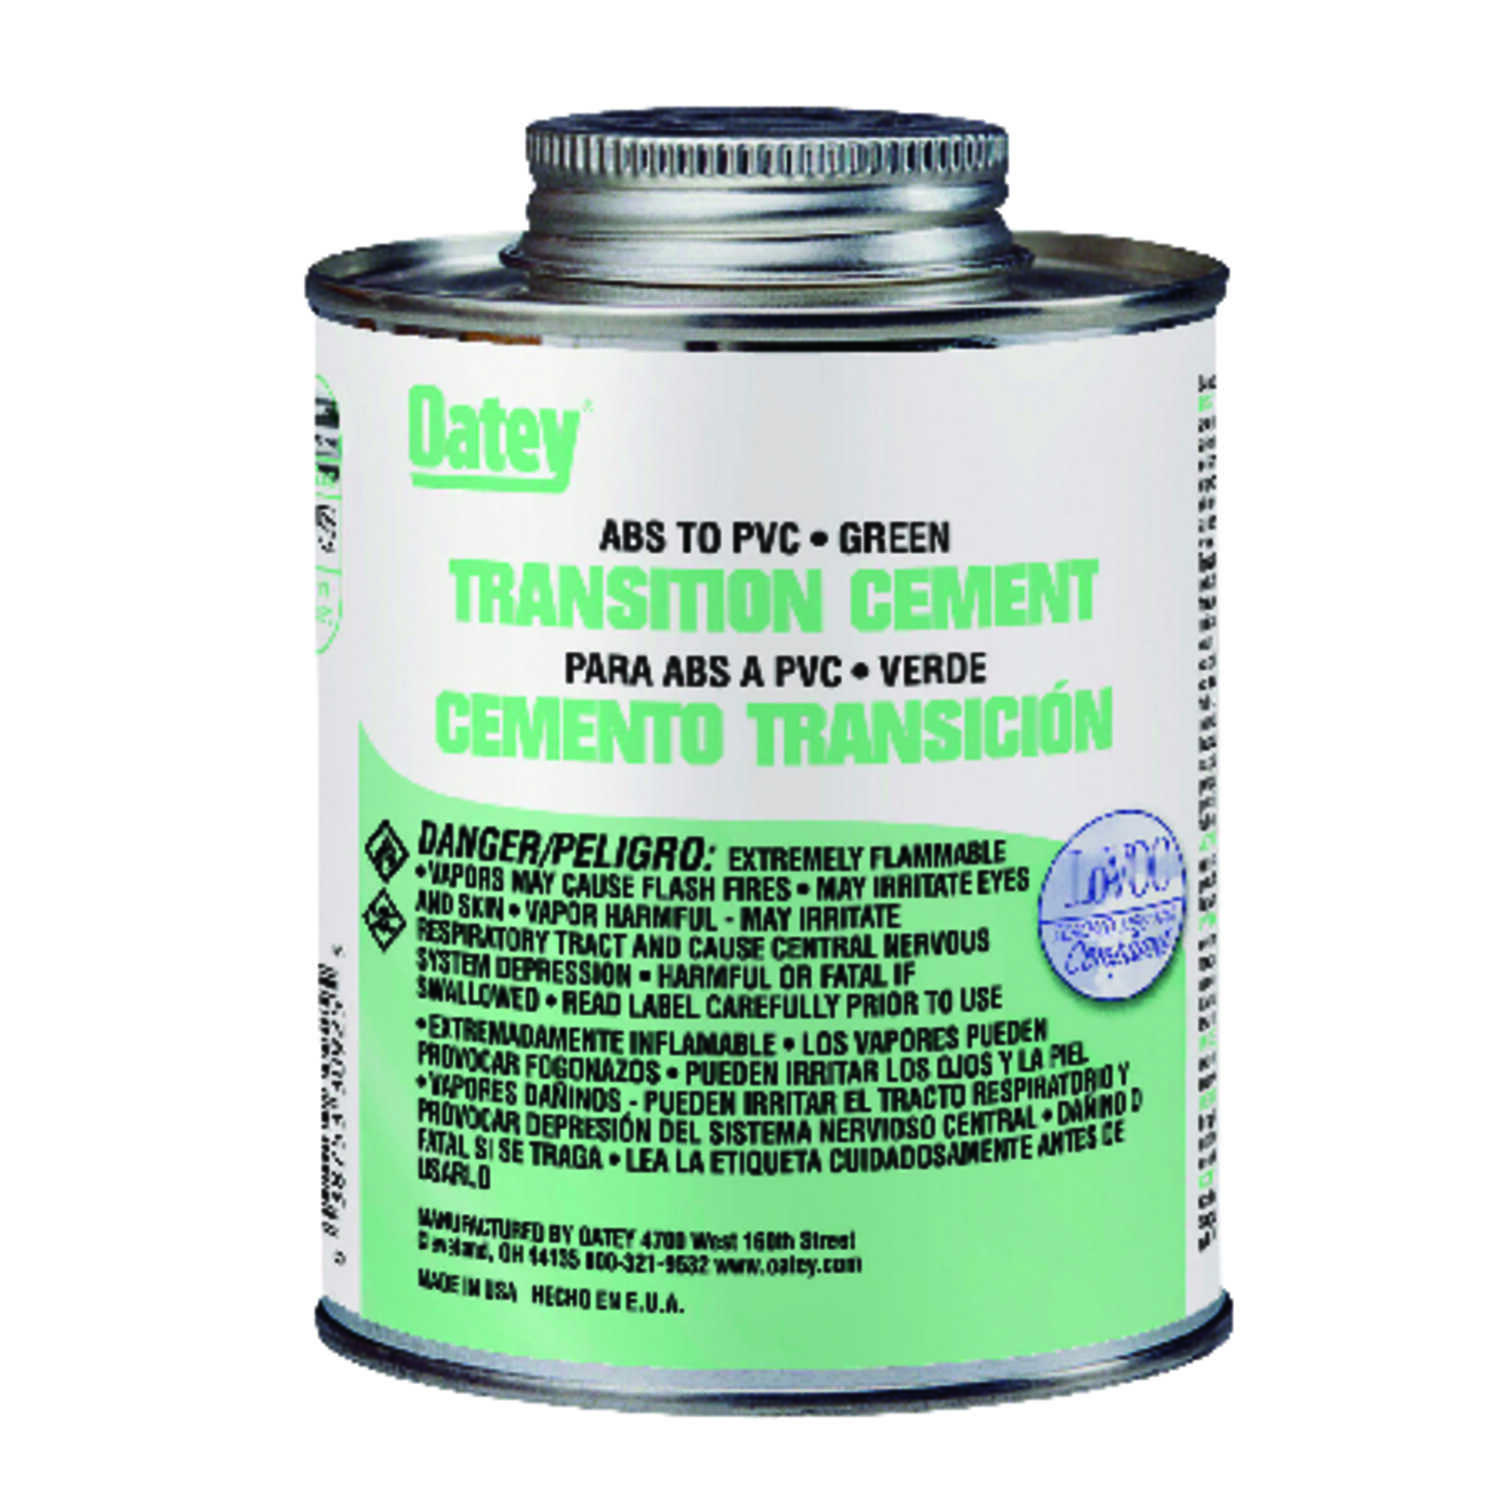 Oatey  Green  Transition Cement  For ABS/PVC 4 oz.